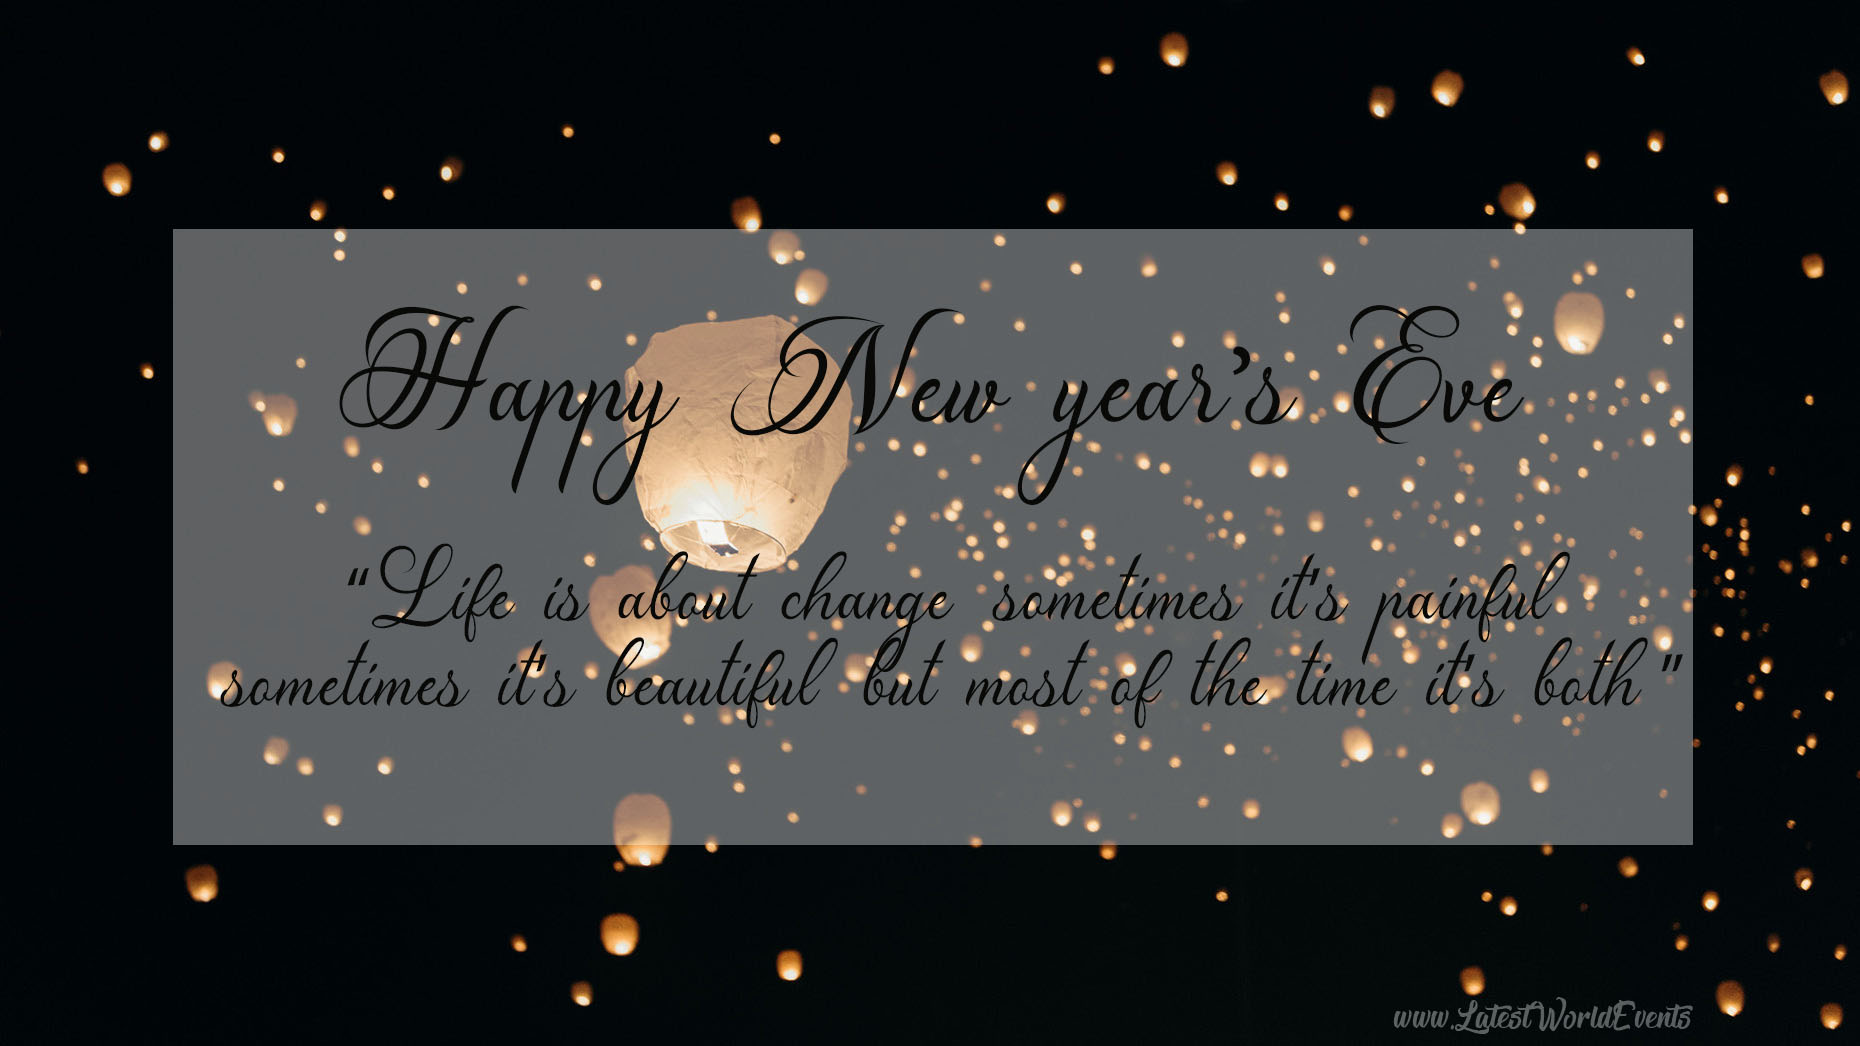 Download-happy-new-year's-eve-wishes